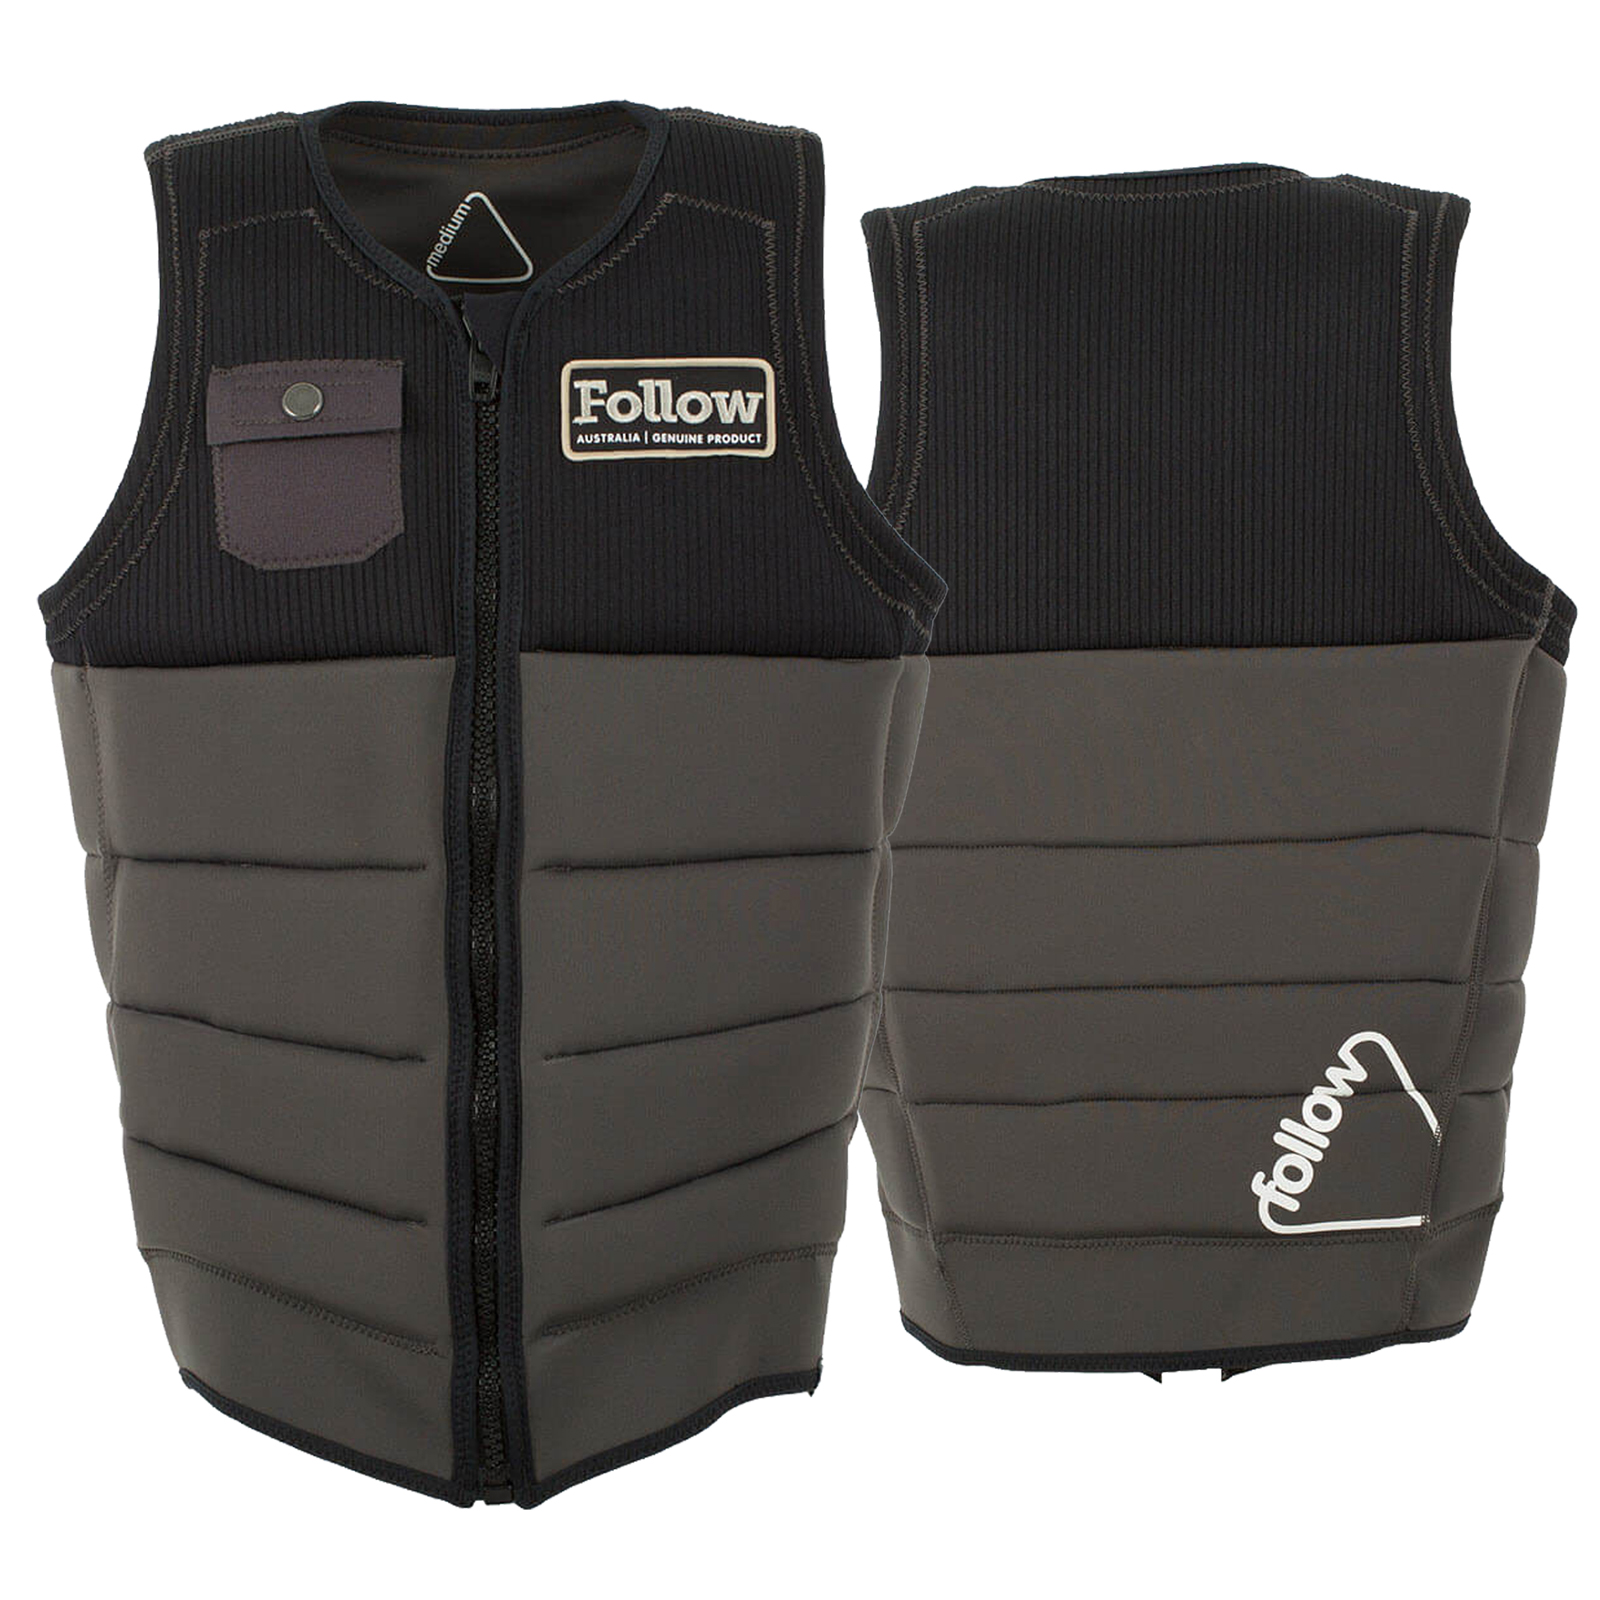 MITCH PRO IMPACT VEST CHARCOAL FOLLOW 2017